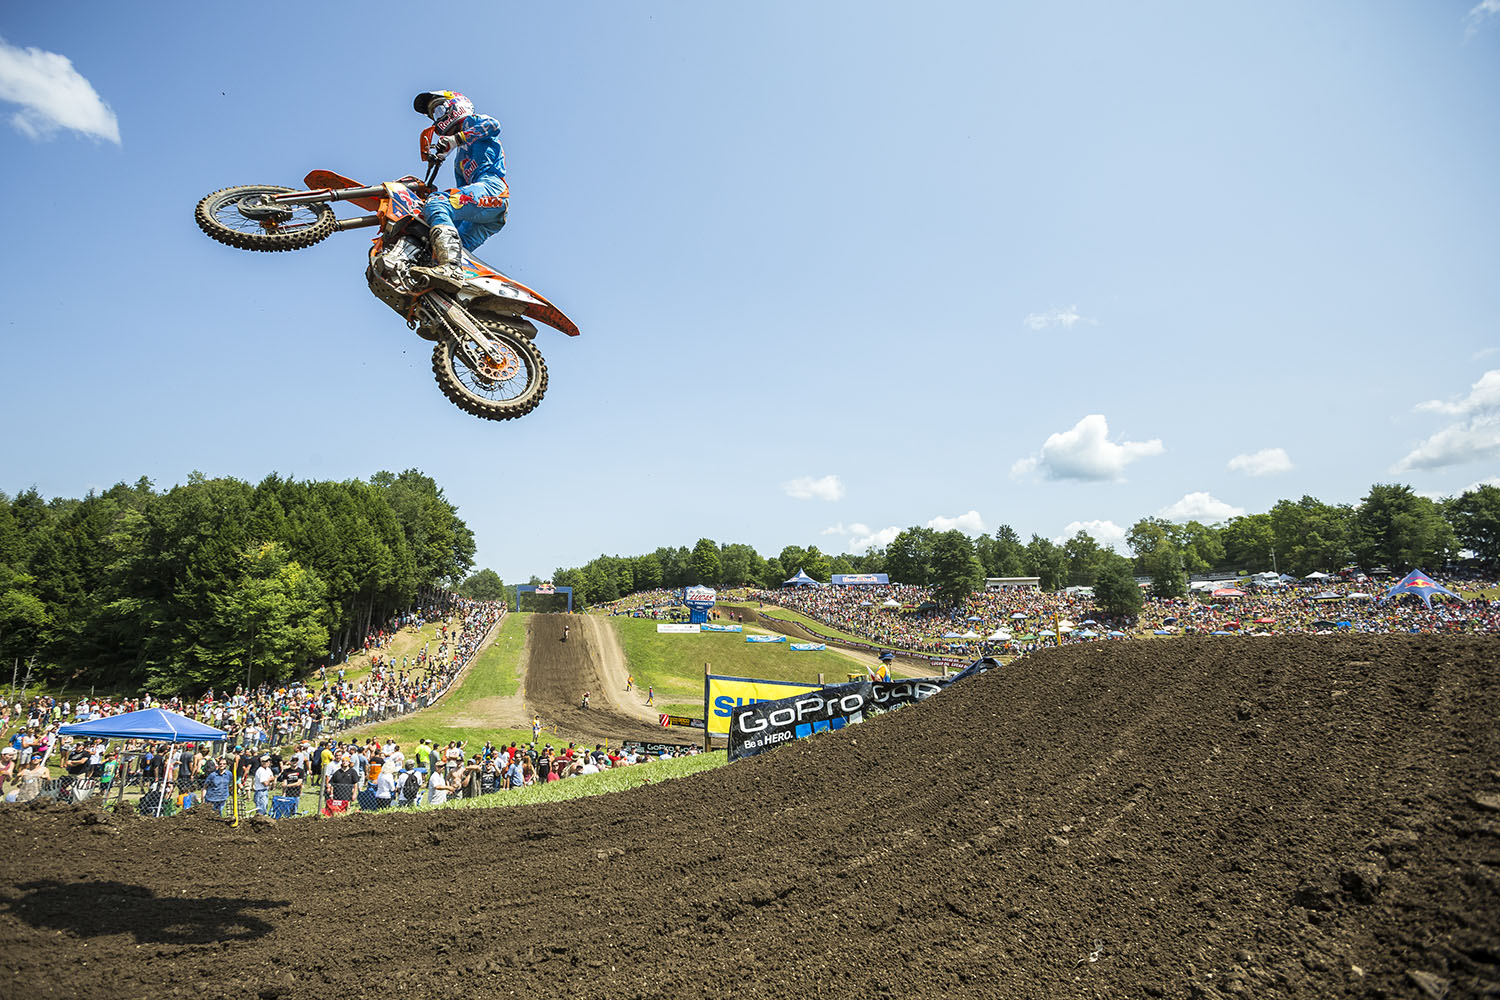 Ryan Dungey competes in the AMA Pro Motocross Championships at Unadilla Valley Sports Center in New Berlin, New York on August 9th, 2014.